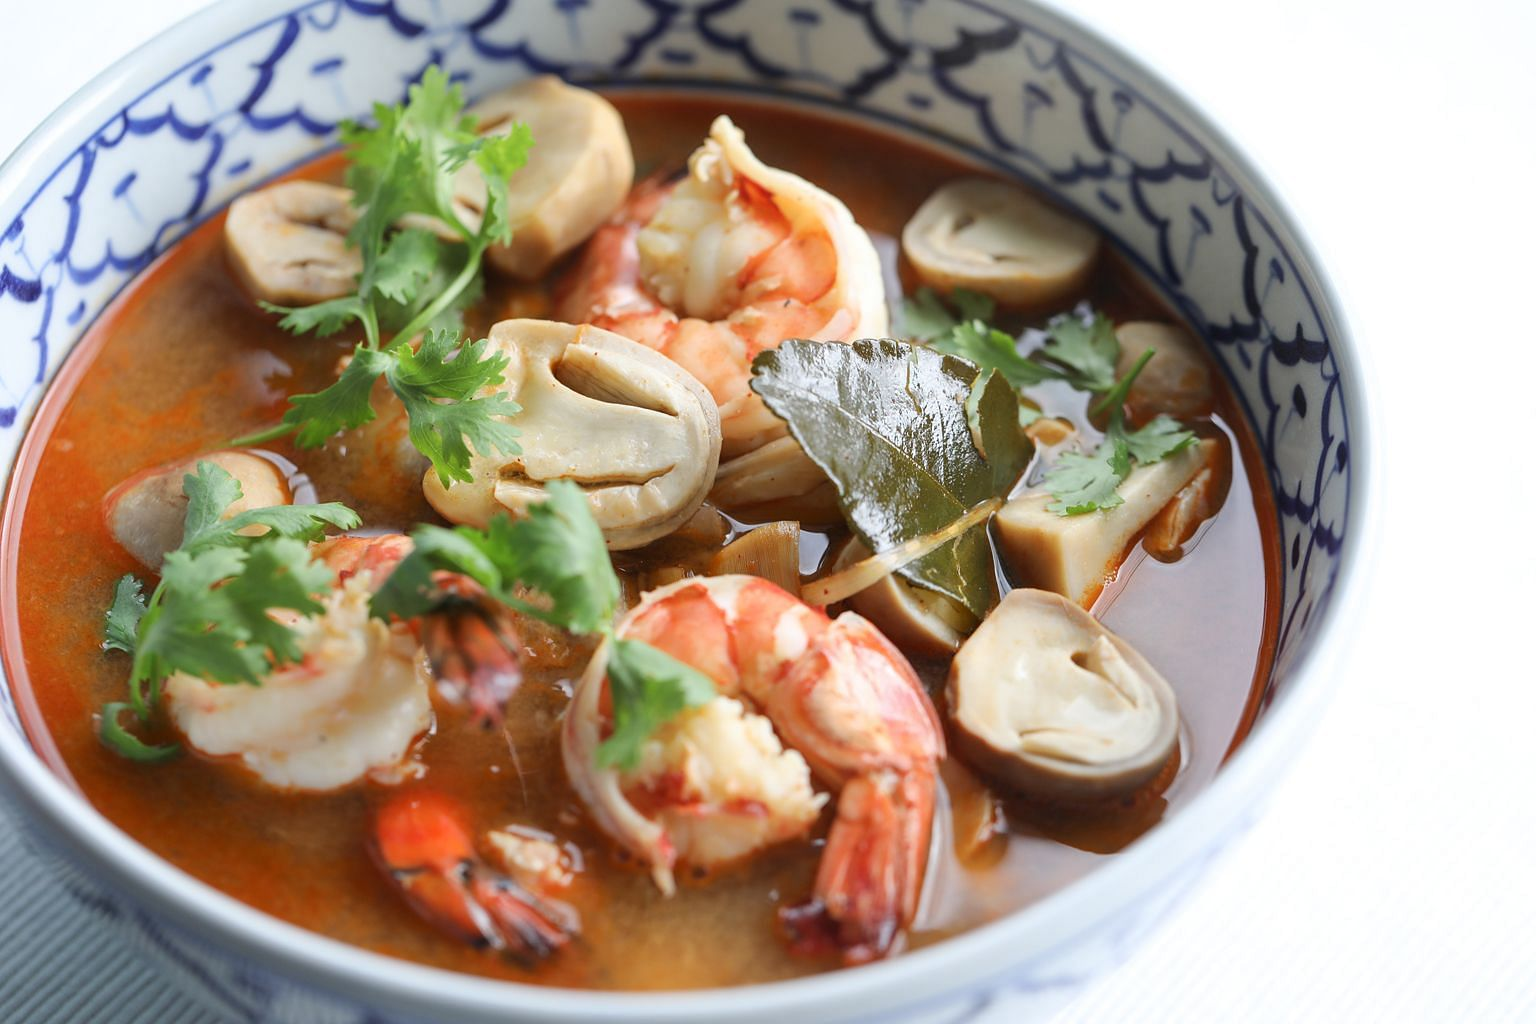 Fresh straw mushrooms are perfect in tom yum, soaking up the hot, sour, spicy and sweet broth.